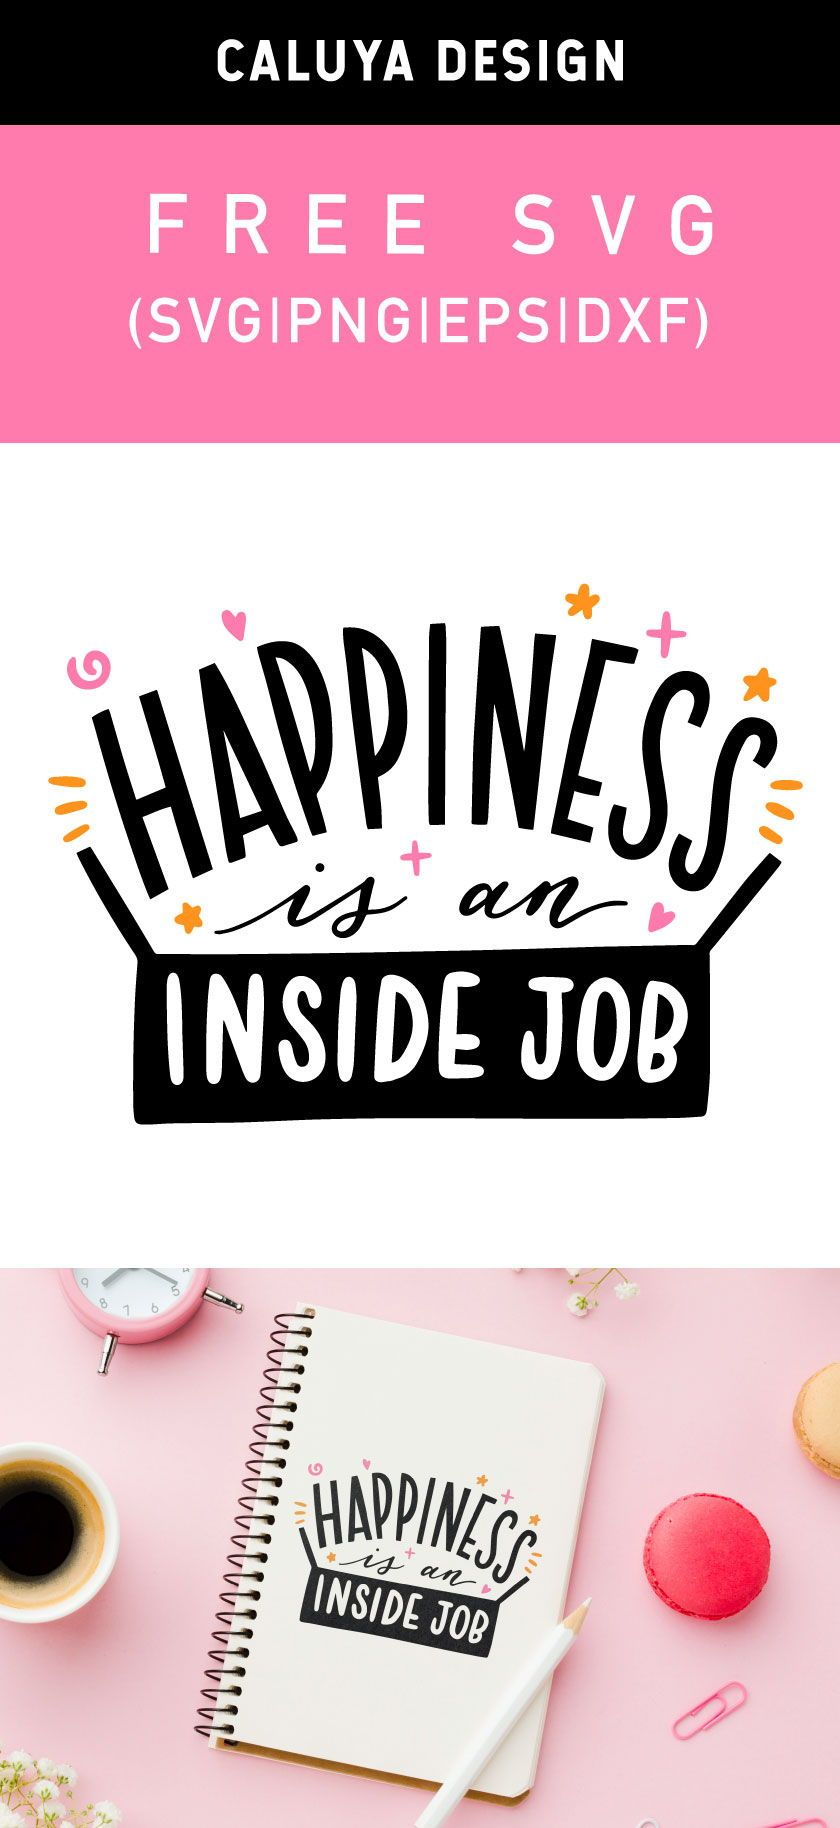 Free Happiness Is An Inside Job Svg Png Eps Dxf In 2020 How To Make Planner Inside Job Free Printable Clip Art